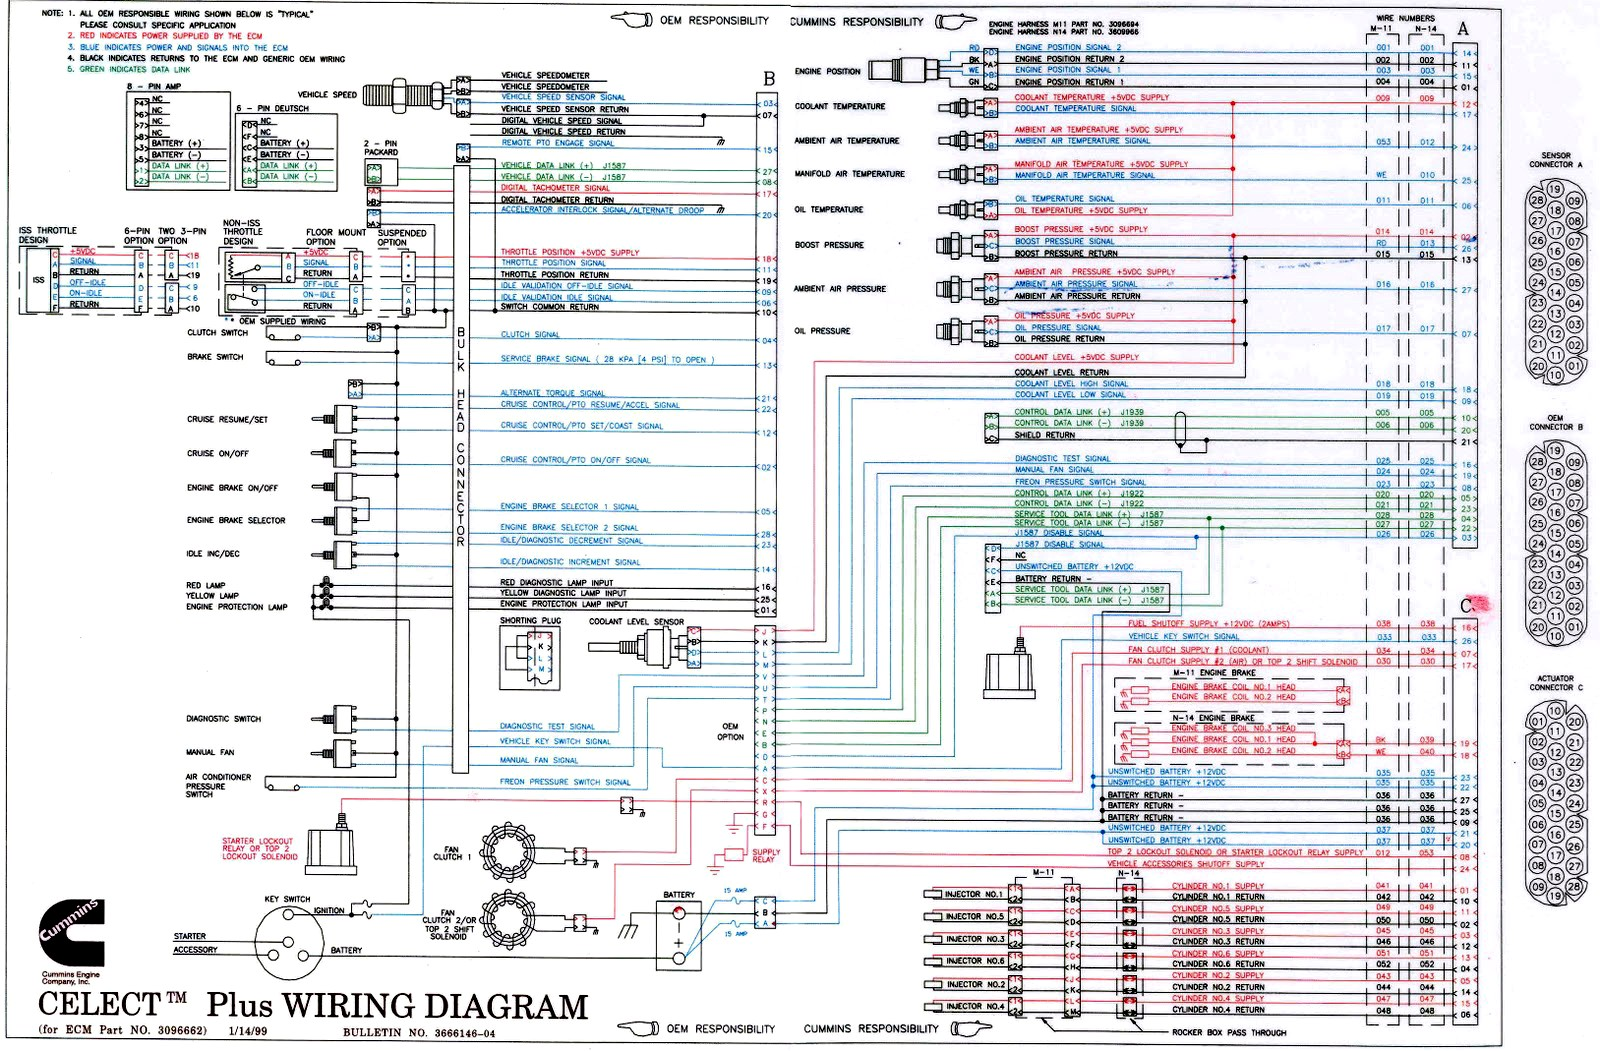 Celect+Plus+Wiring+Diagram+Cummins wiring diagram 1991 kenworth t600 readingrat net kenworth t600 wiring diagrams at eliteediting.co